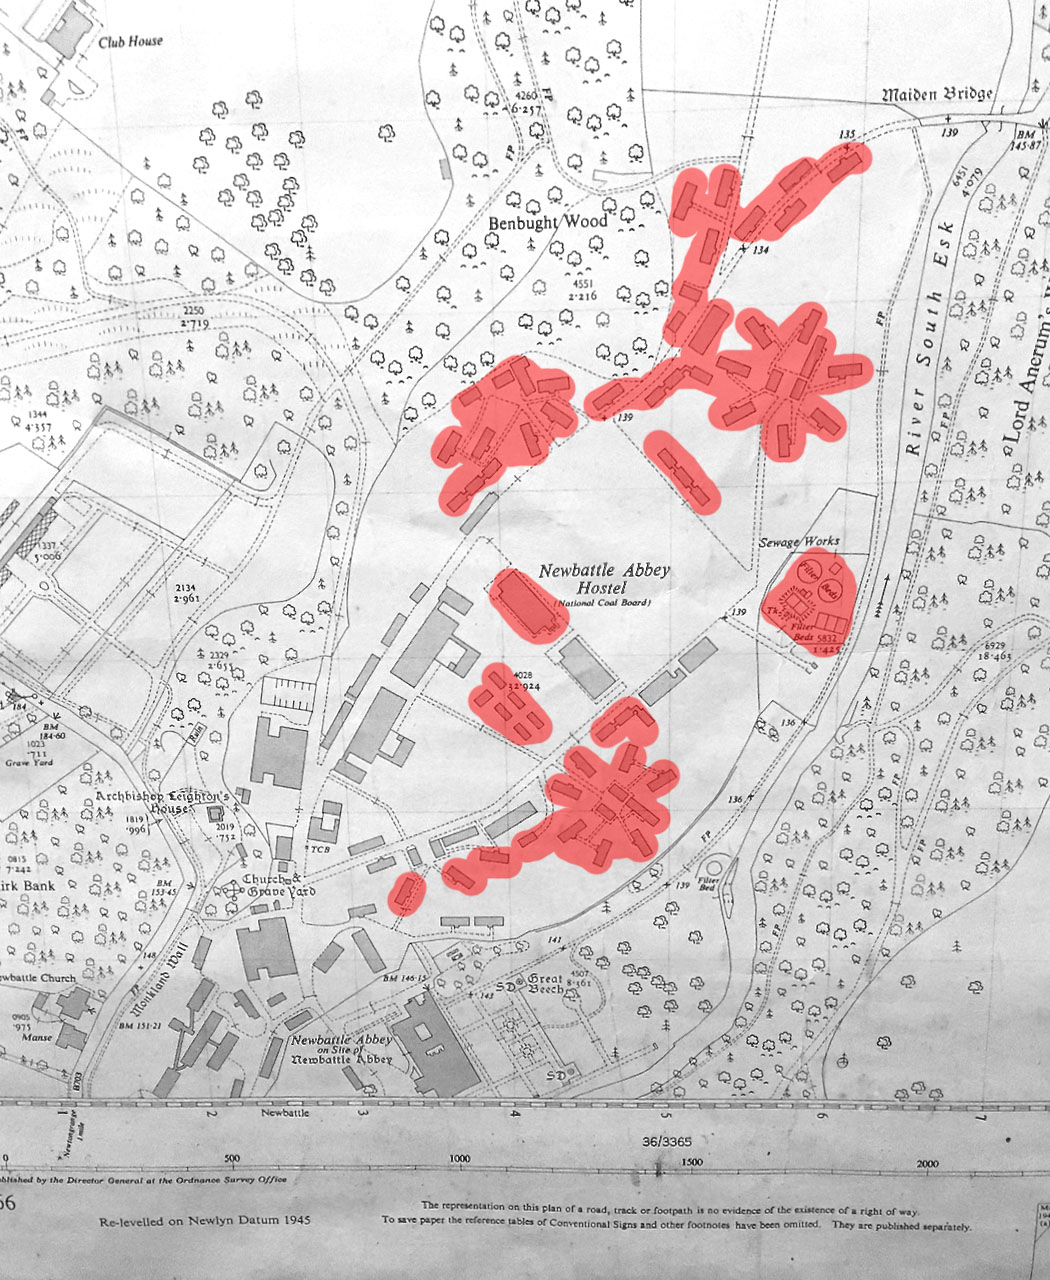 Camp layout now showing buildings that no longer stand. Some of those left are empty shells…